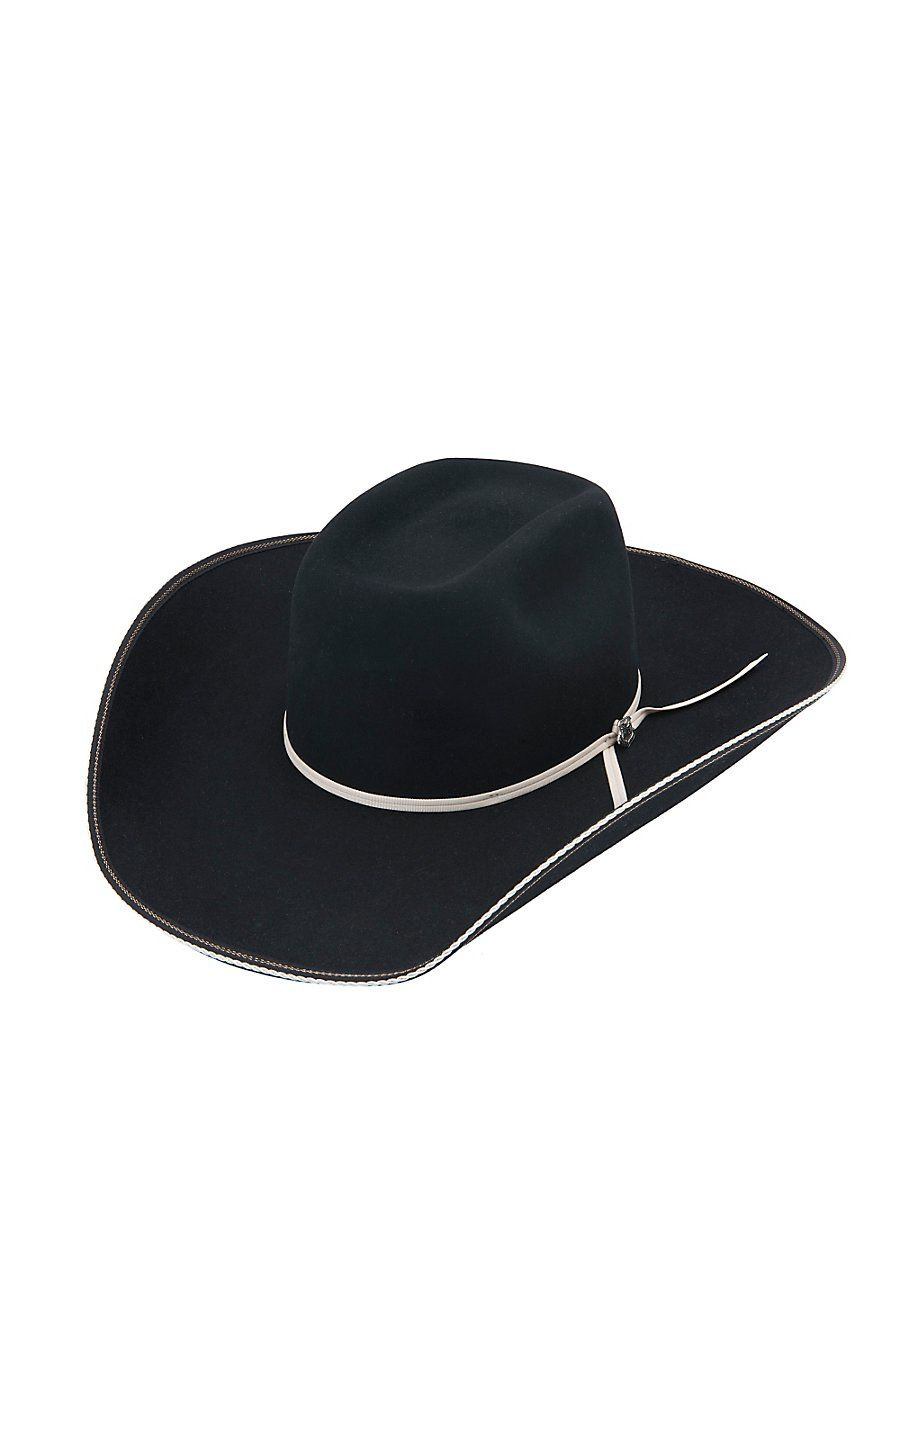 5d2125bb1c4 Resistol 4X Snake Eyes Black Brick Felt Cowboy Hat in 2019